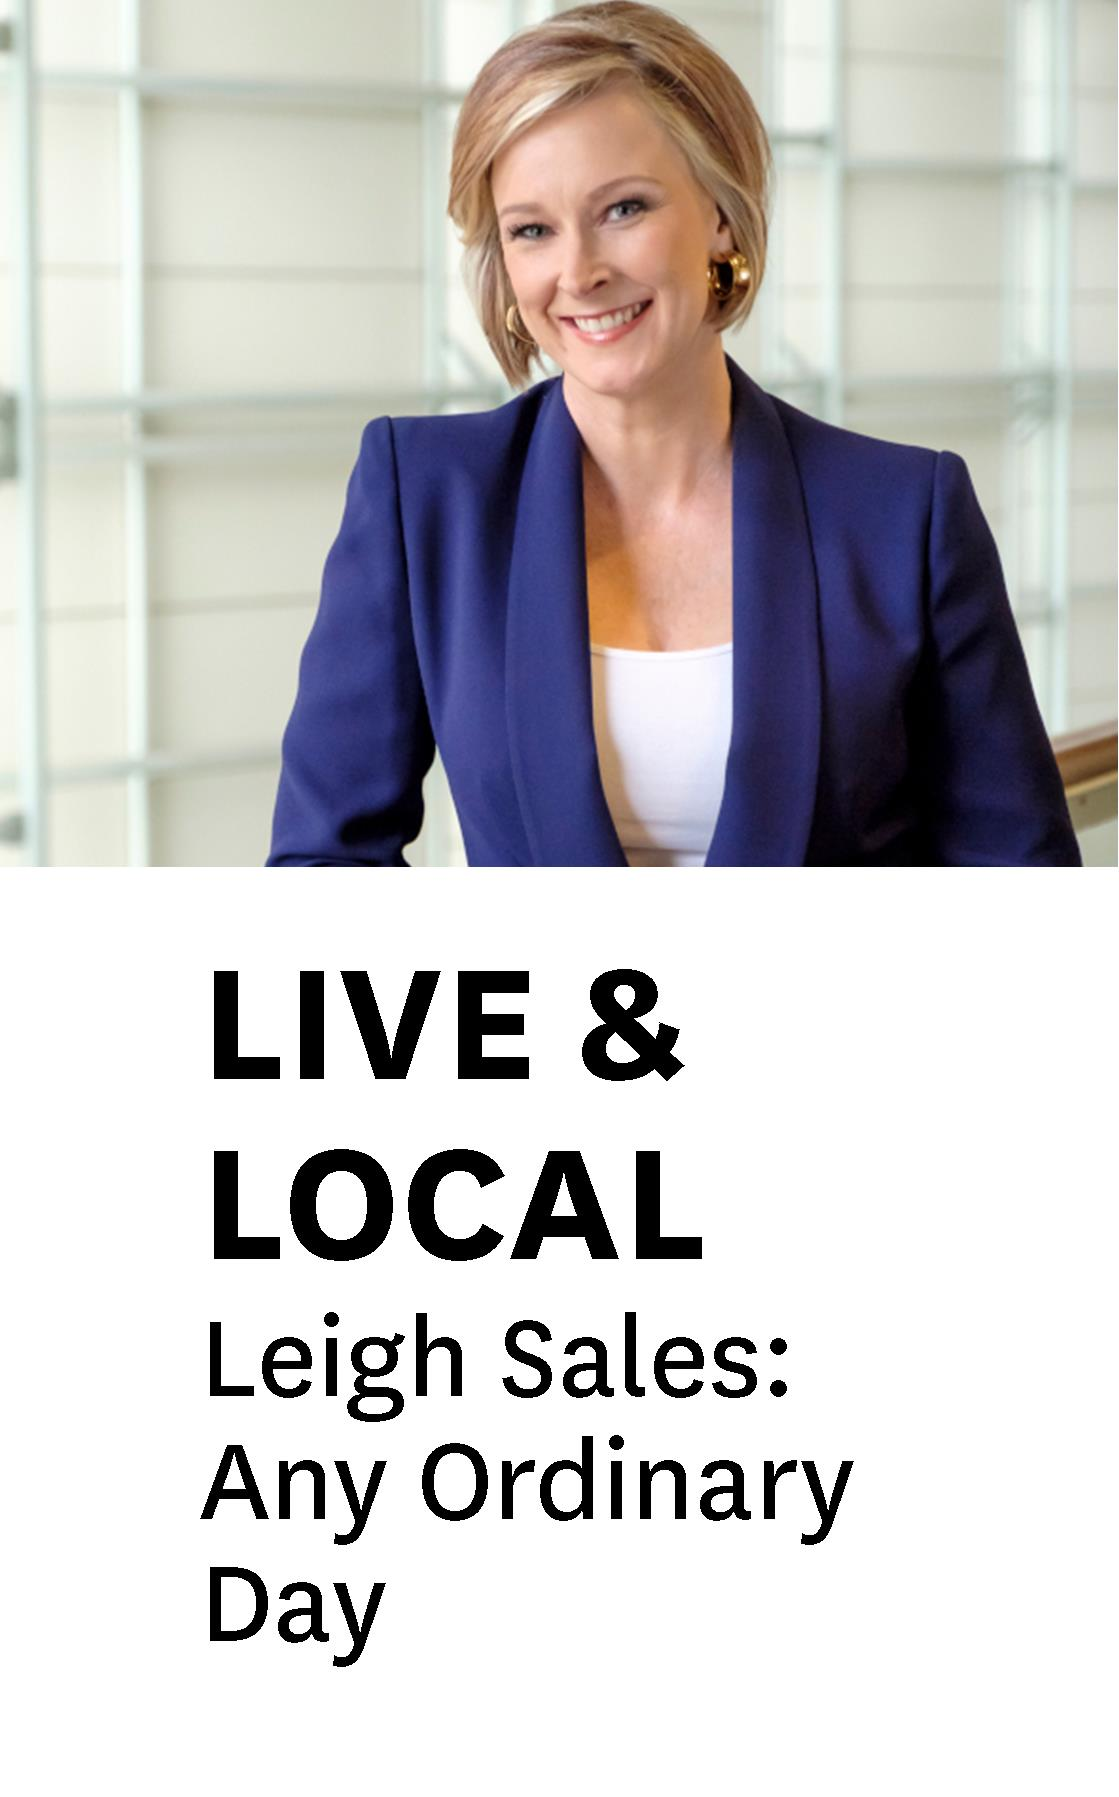 Fri 3 May 9:50 AM - In a special event, Walkley Award-winning anchor of ABC's 7.30 Leigh Sales sheds light on Any Ordinary Day, her layered exploration of how ordinary people endure unthinkable tragedy…